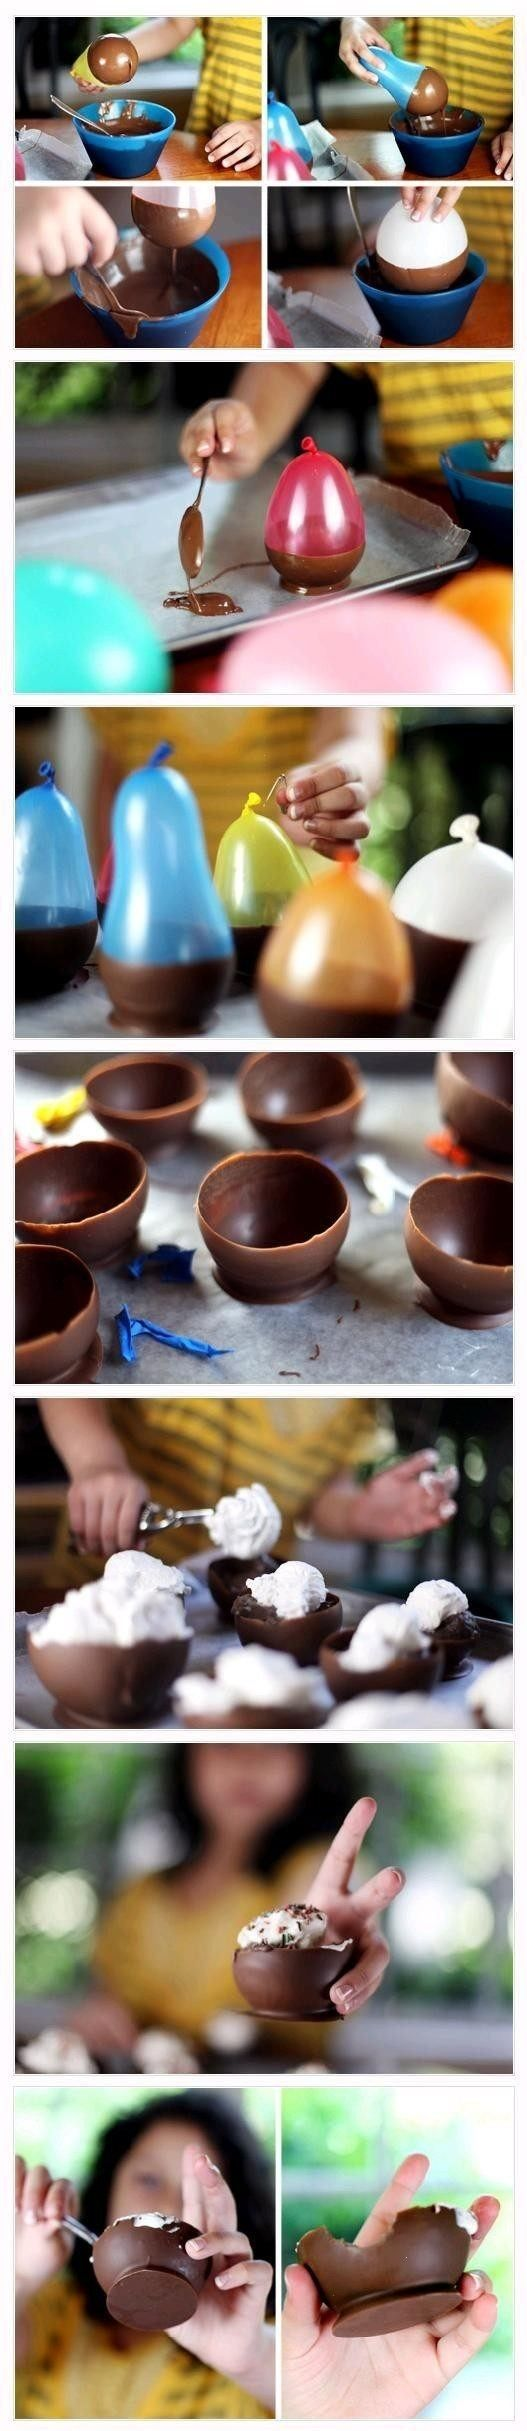 I know I've pinned something like this before.  LOVE the DIY Chocolate Bowl thing.  They'd be great made w/ my Homemade Choc or White Choc Chips!